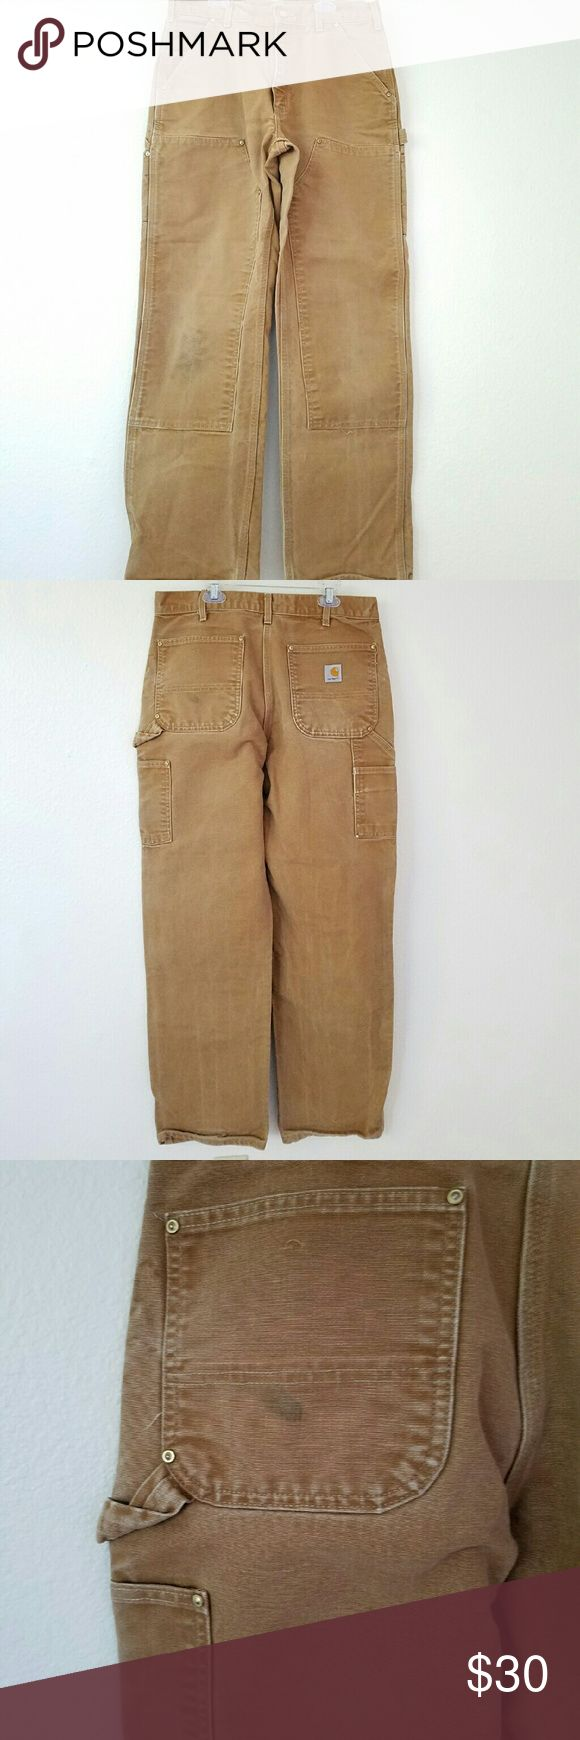 CARHARTT Pants Classic men's Carhartts. Good condition except 2 spots as shown in photo 3 and 4. Made in the USA, these will last for years. Size 33/32 Carhartt Pants